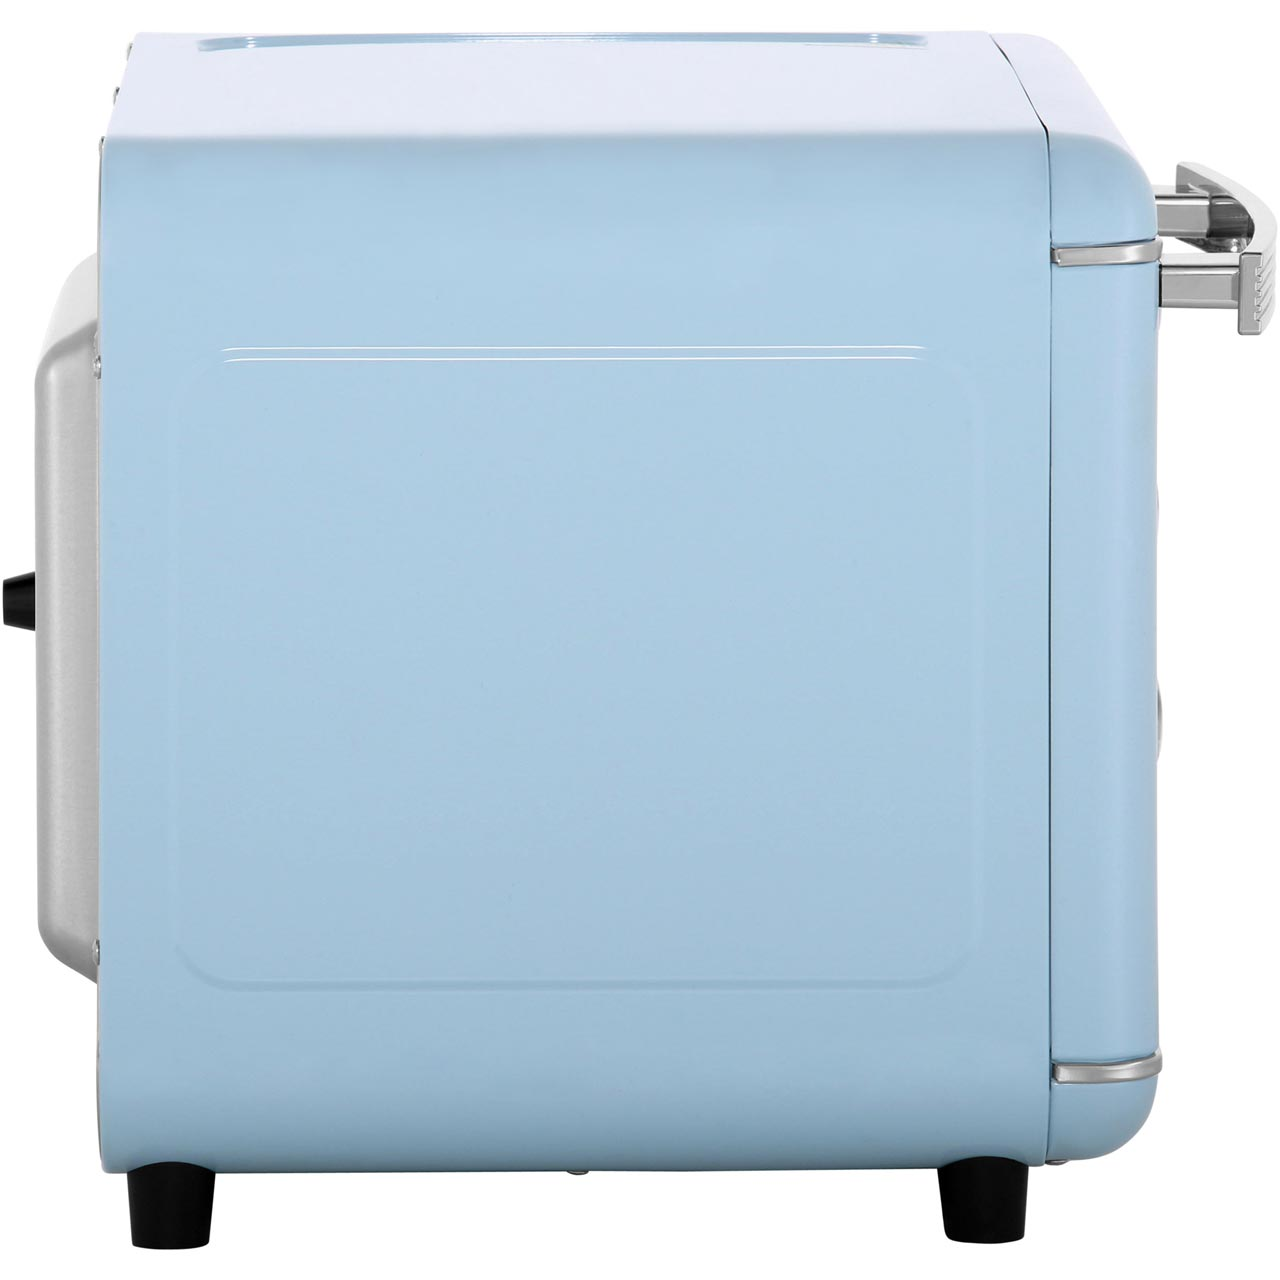 Swan Retro SF37010BLN Mini Oven & Rotisserie - Blue